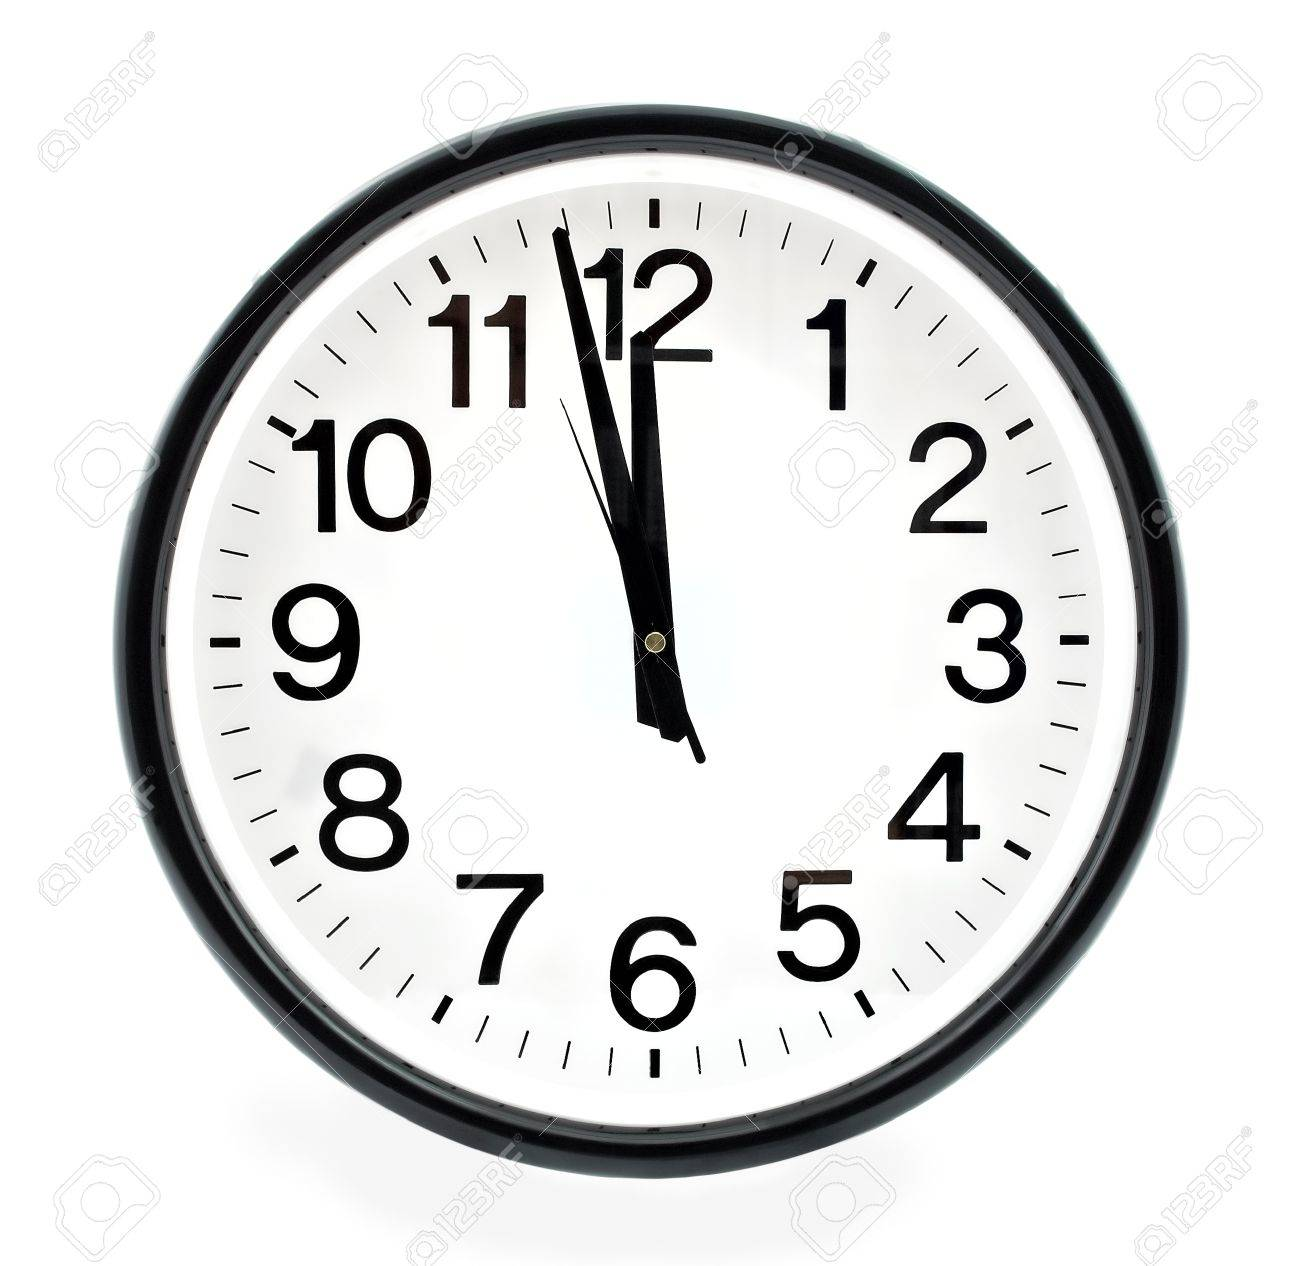 Black Wall Clock Black Wall Clock Two Minutes To Twelve